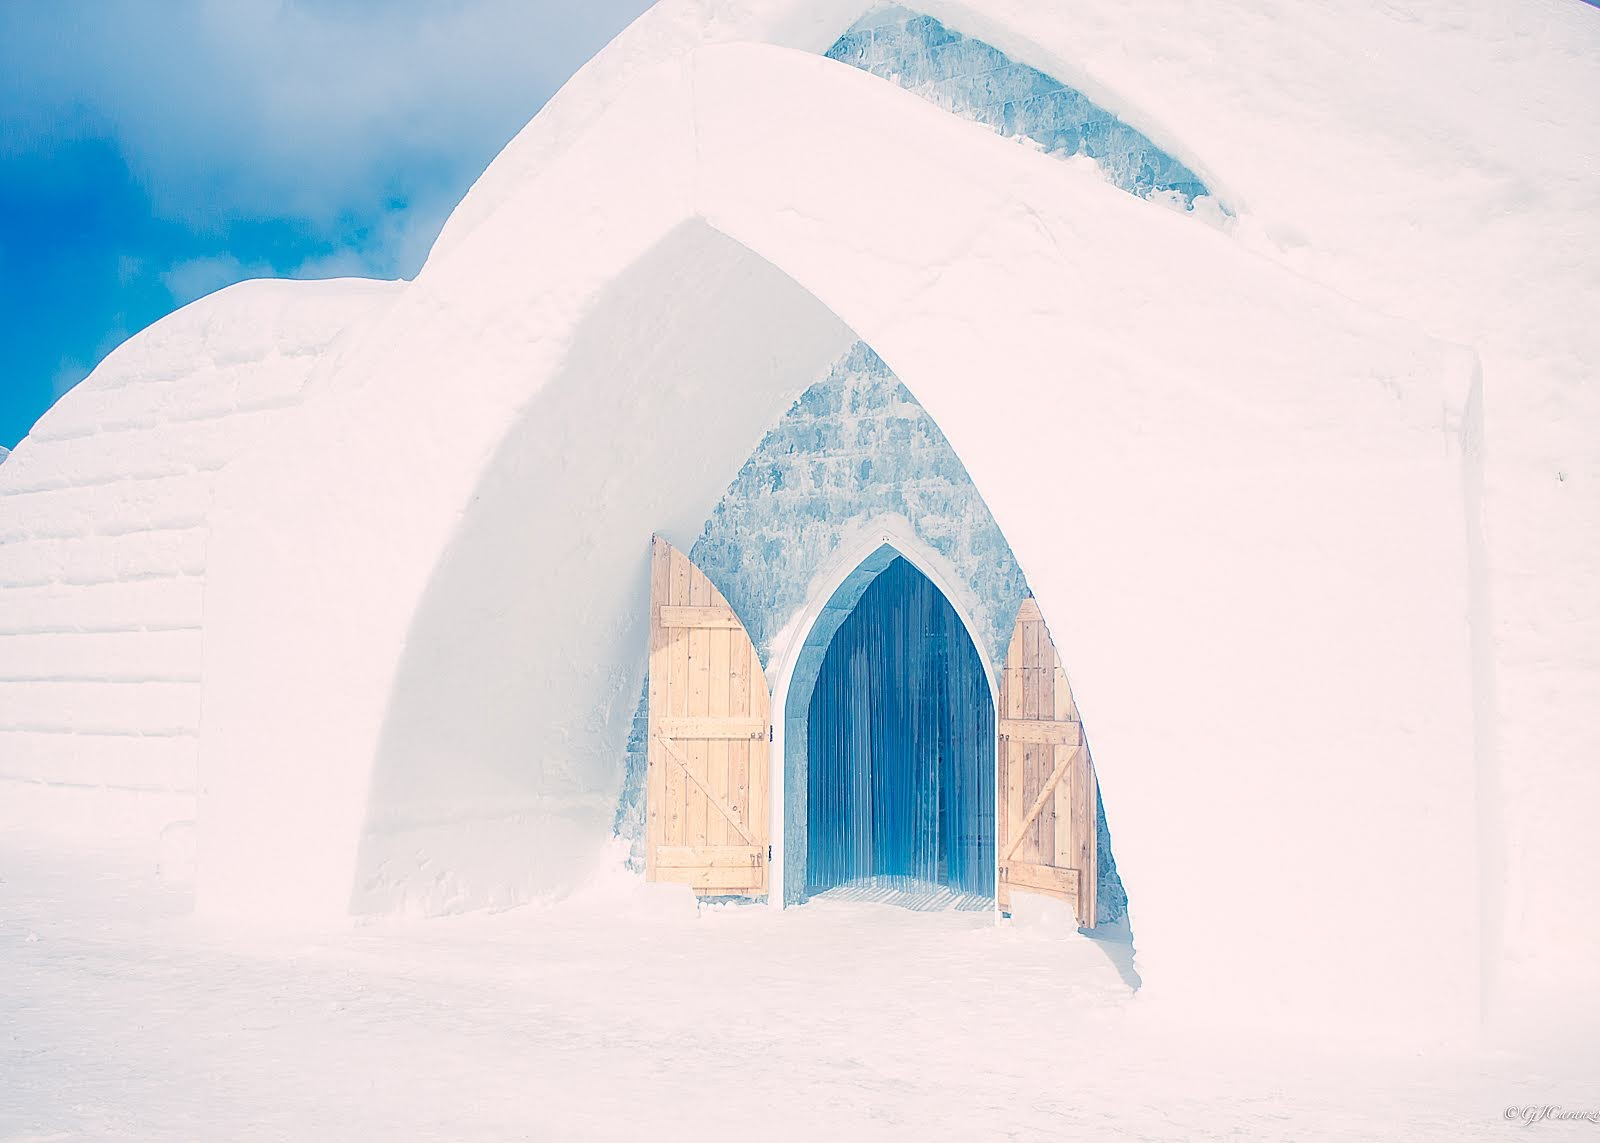 Ice Hotel: Things To Do in Quebec in Winter